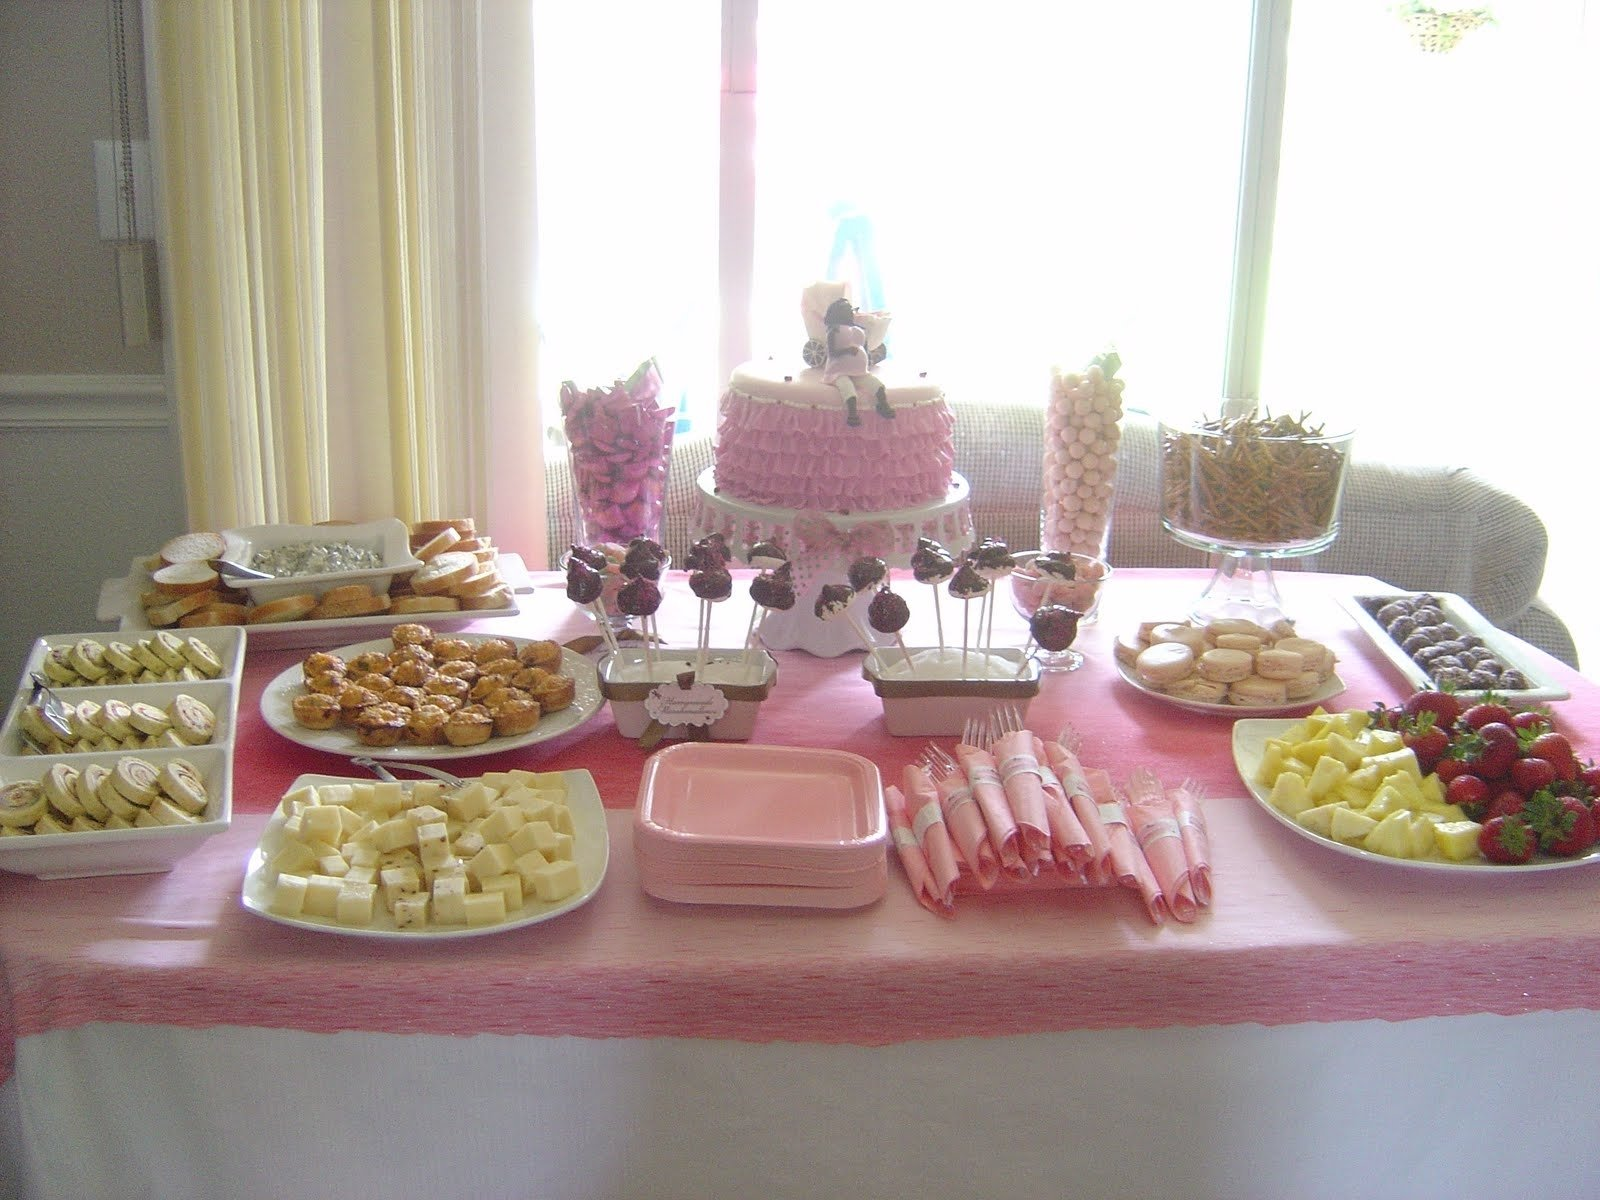 10 Perfect Baby Shower Food Ideas Pinterest table setup for a baby shower saturday june 05 2010 baby 2021